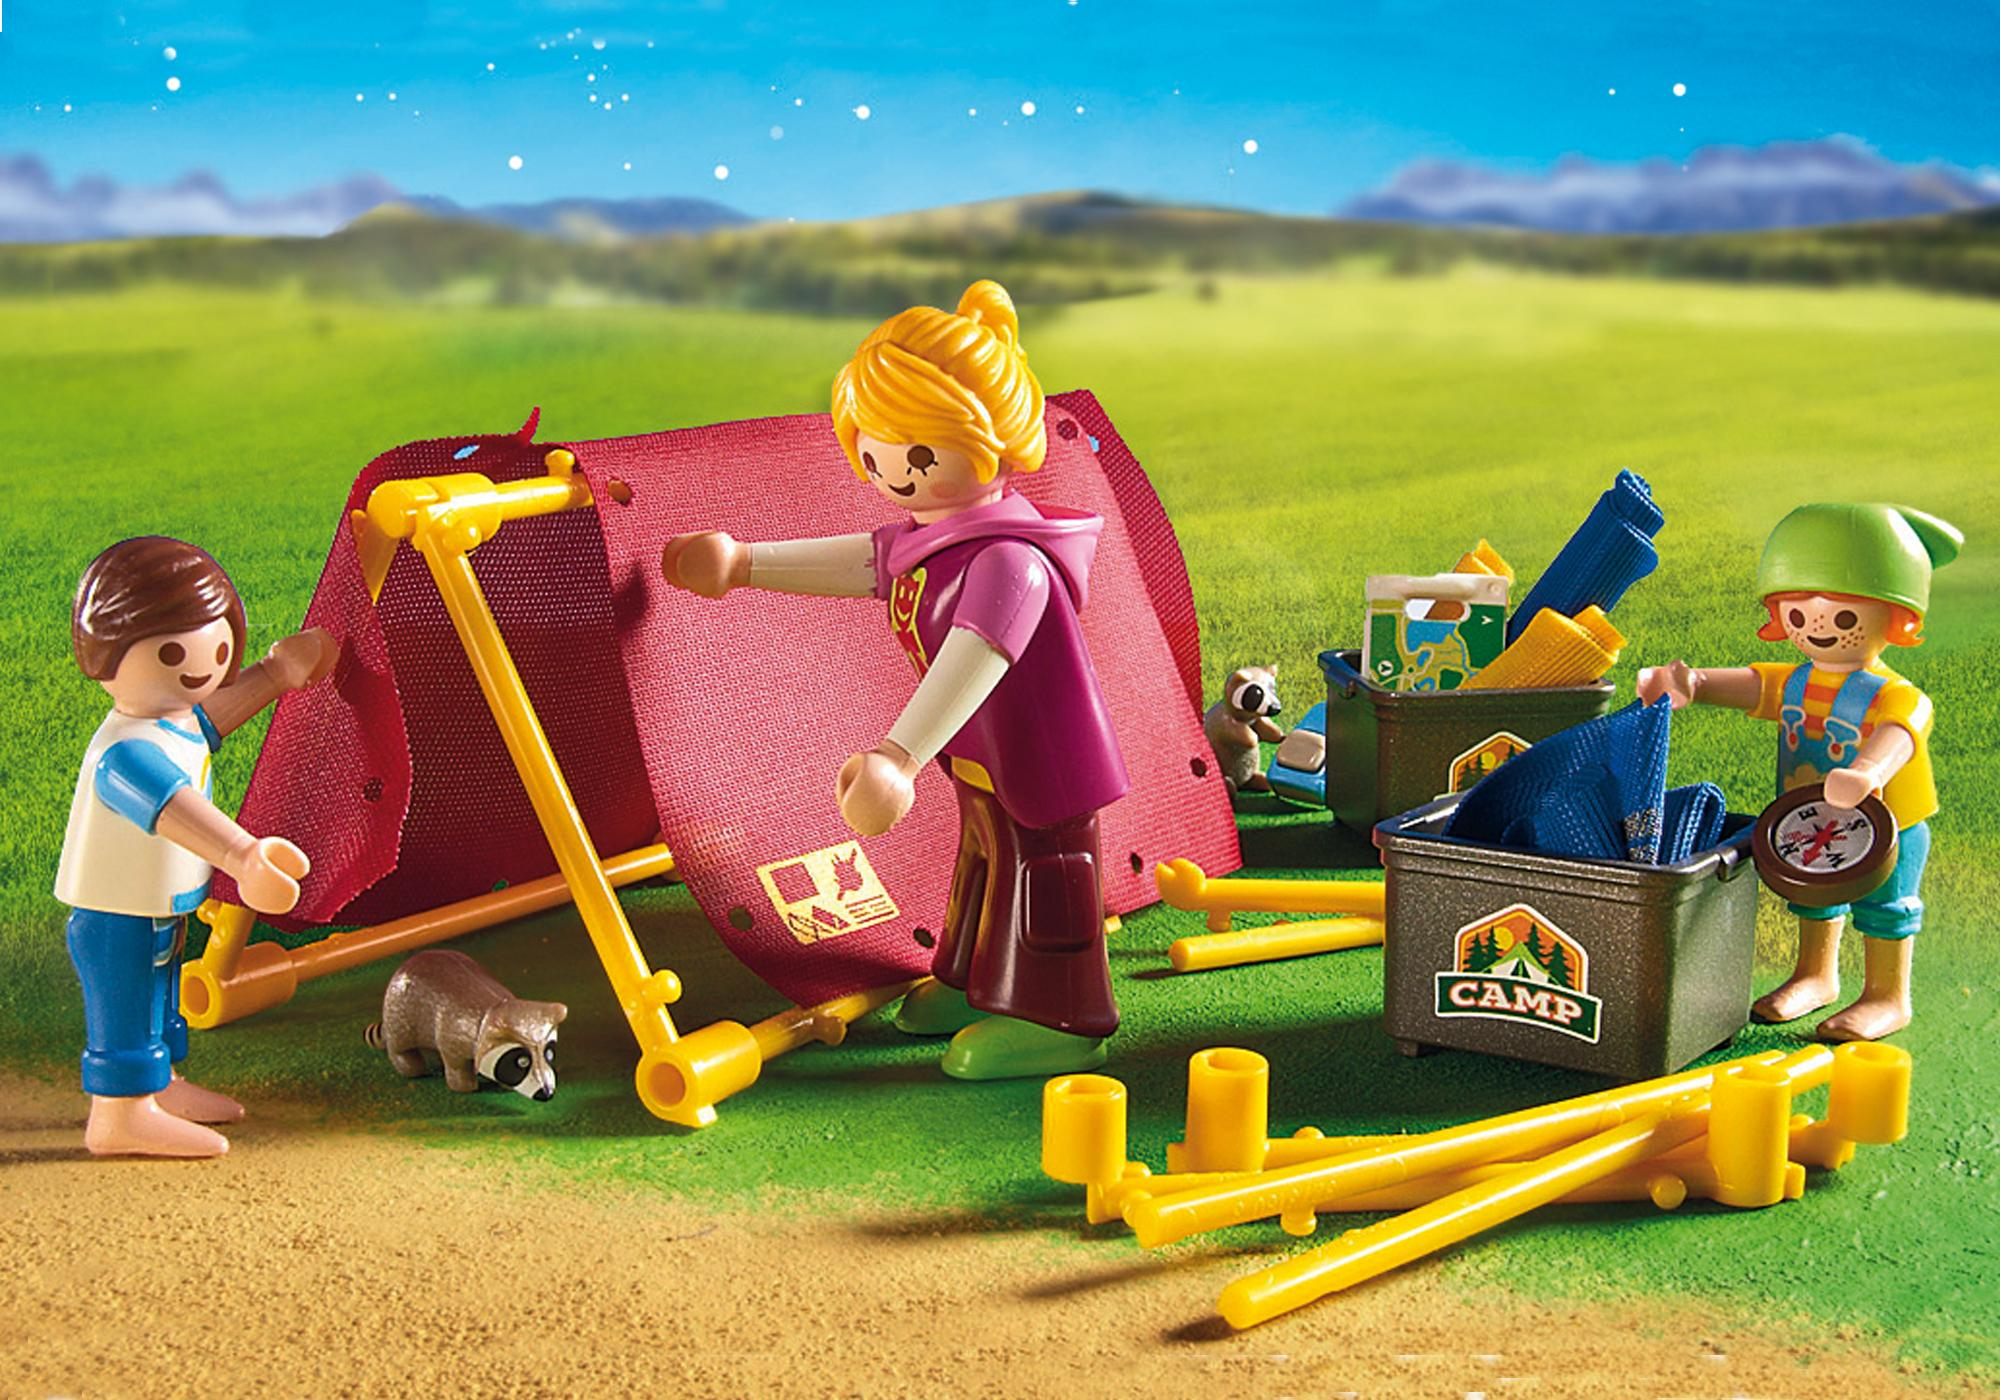 http://media.playmobil.com/i/playmobil/6888_product_extra2